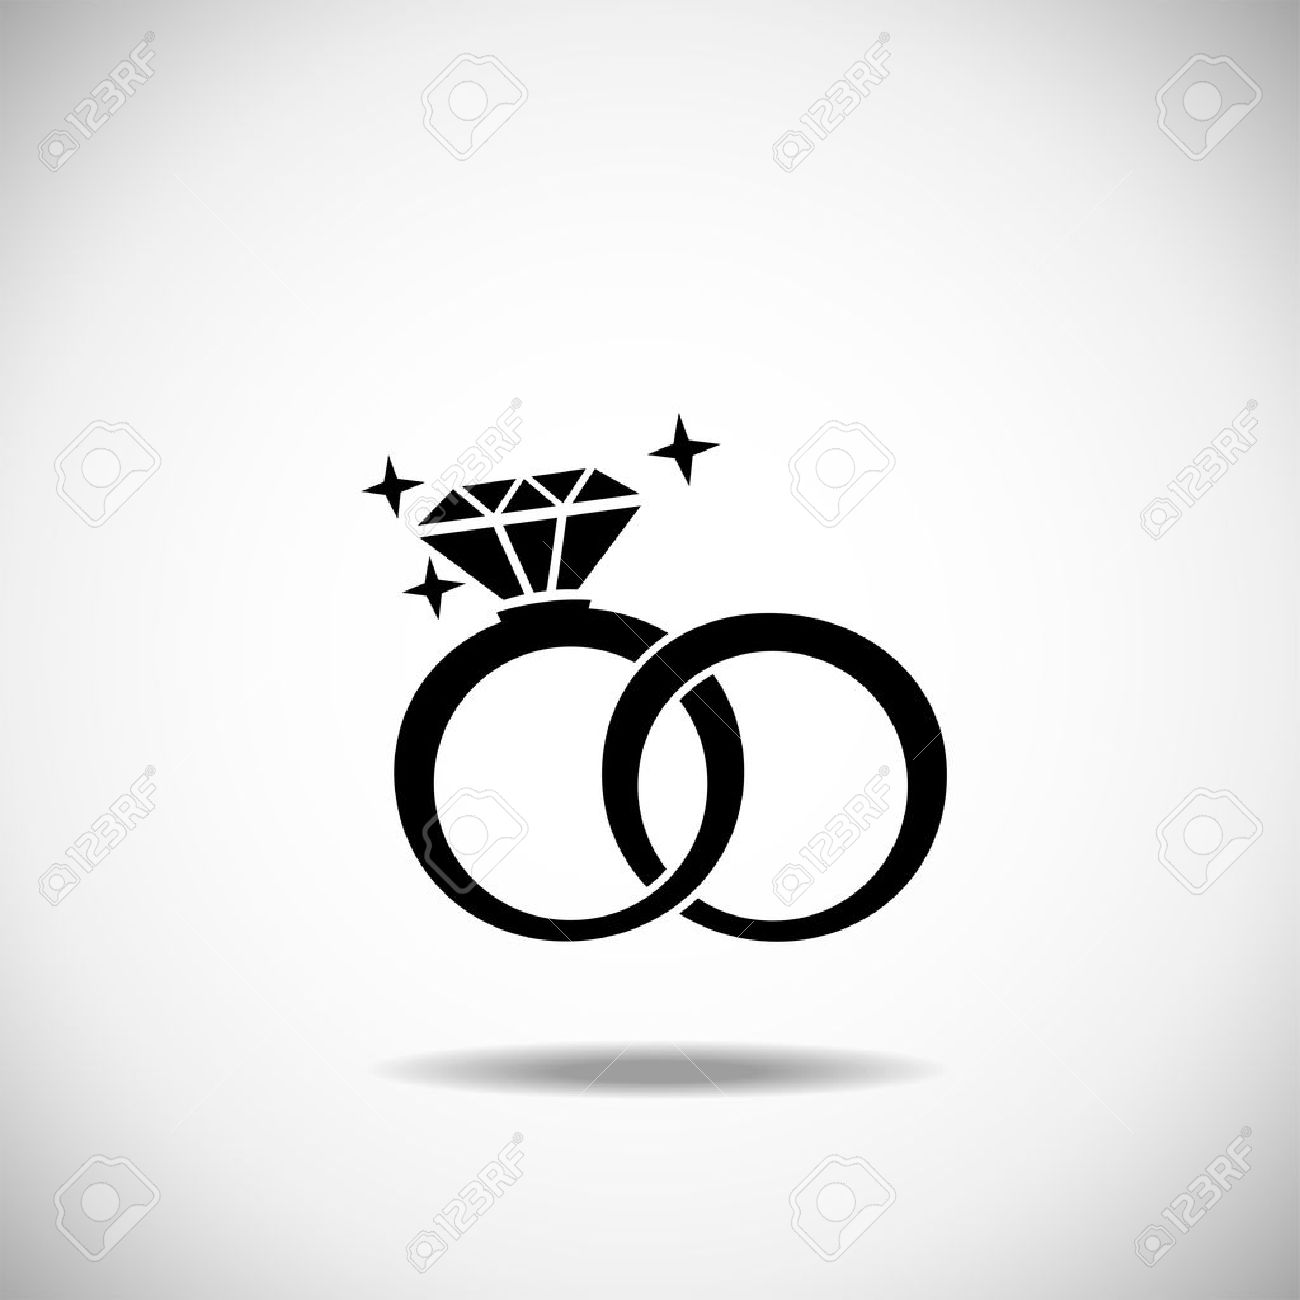 Wedding rings vector  Wedding Rings Icon On A White Background Royalty Free Cliparts ...